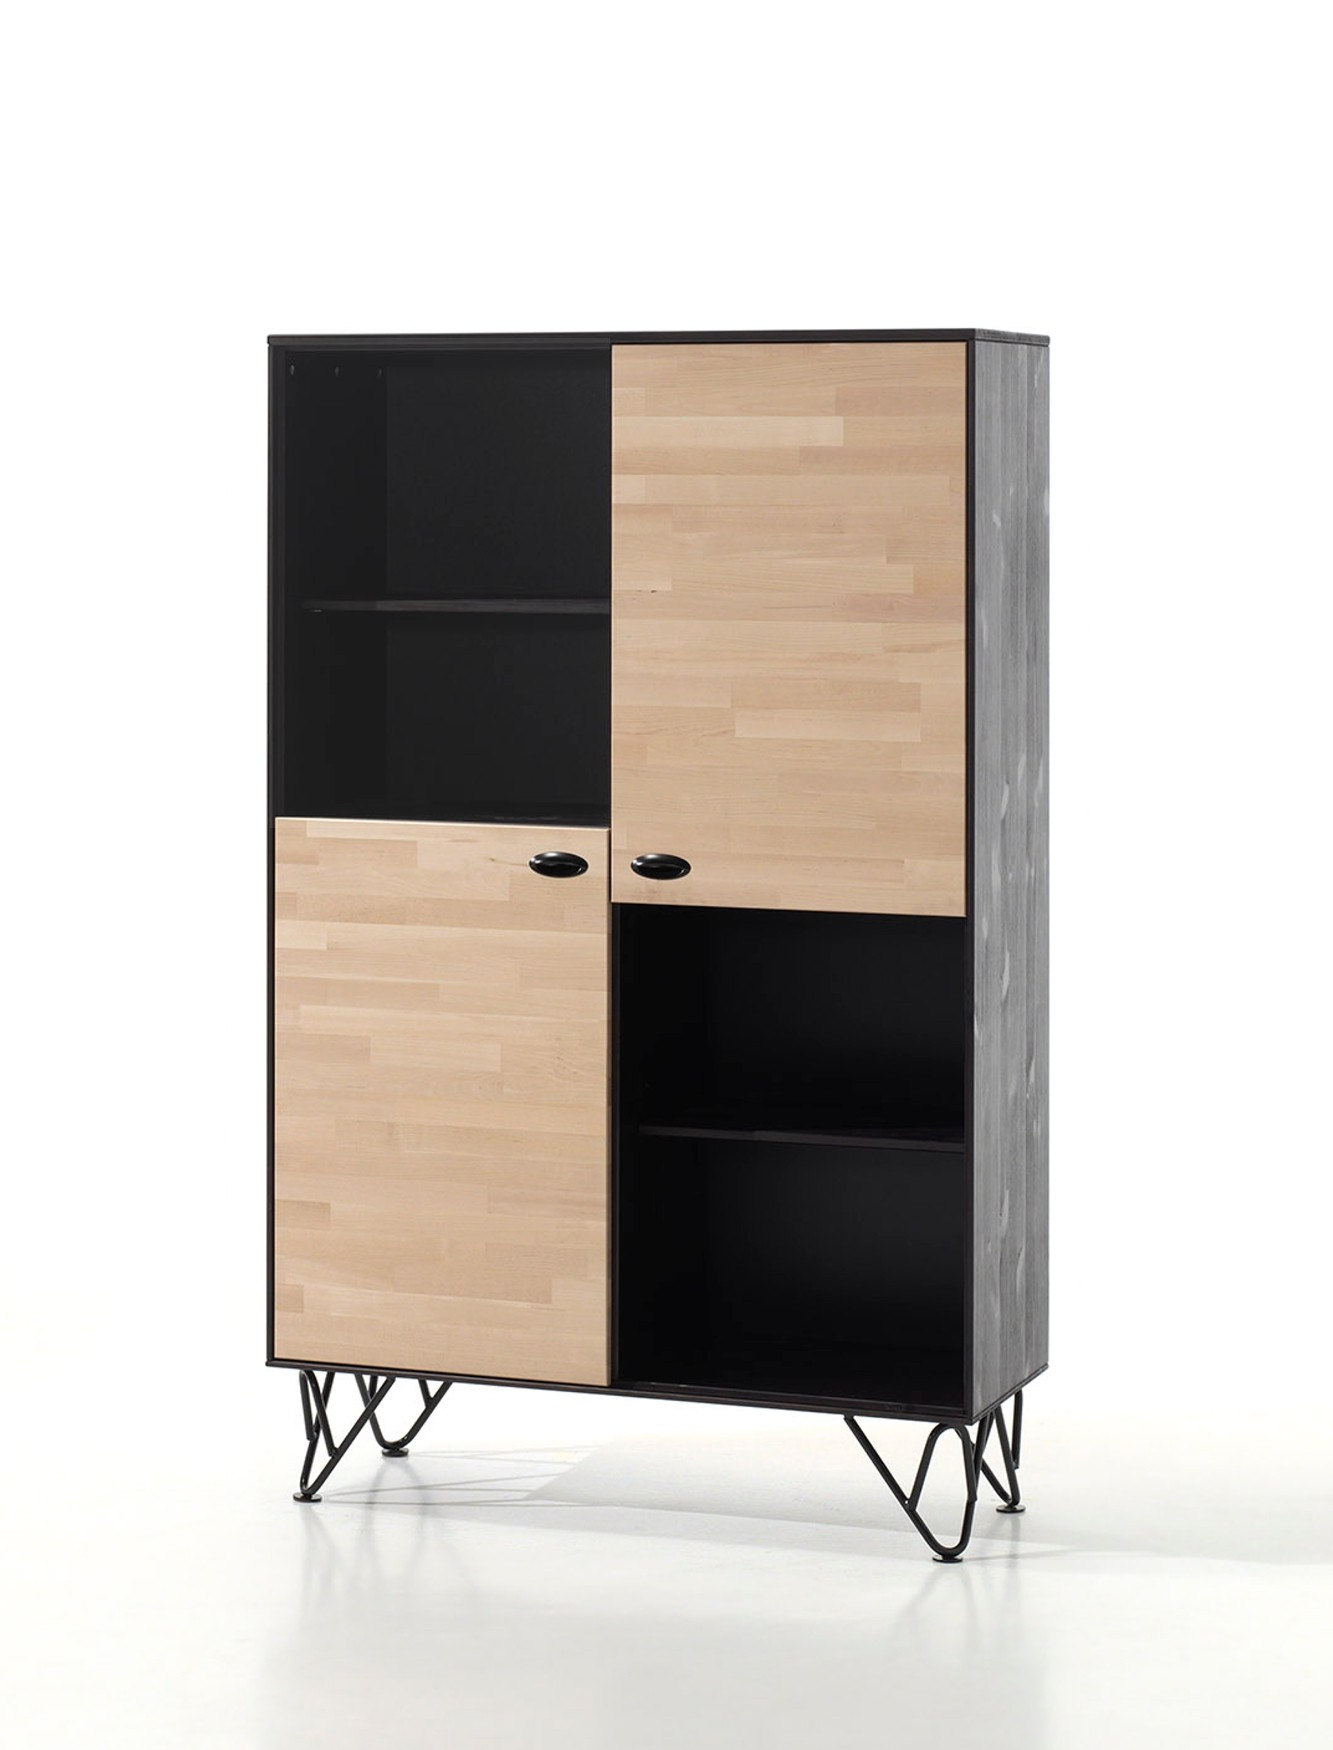 regal william 4 f cher und 2 t ren birke natur. Black Bedroom Furniture Sets. Home Design Ideas